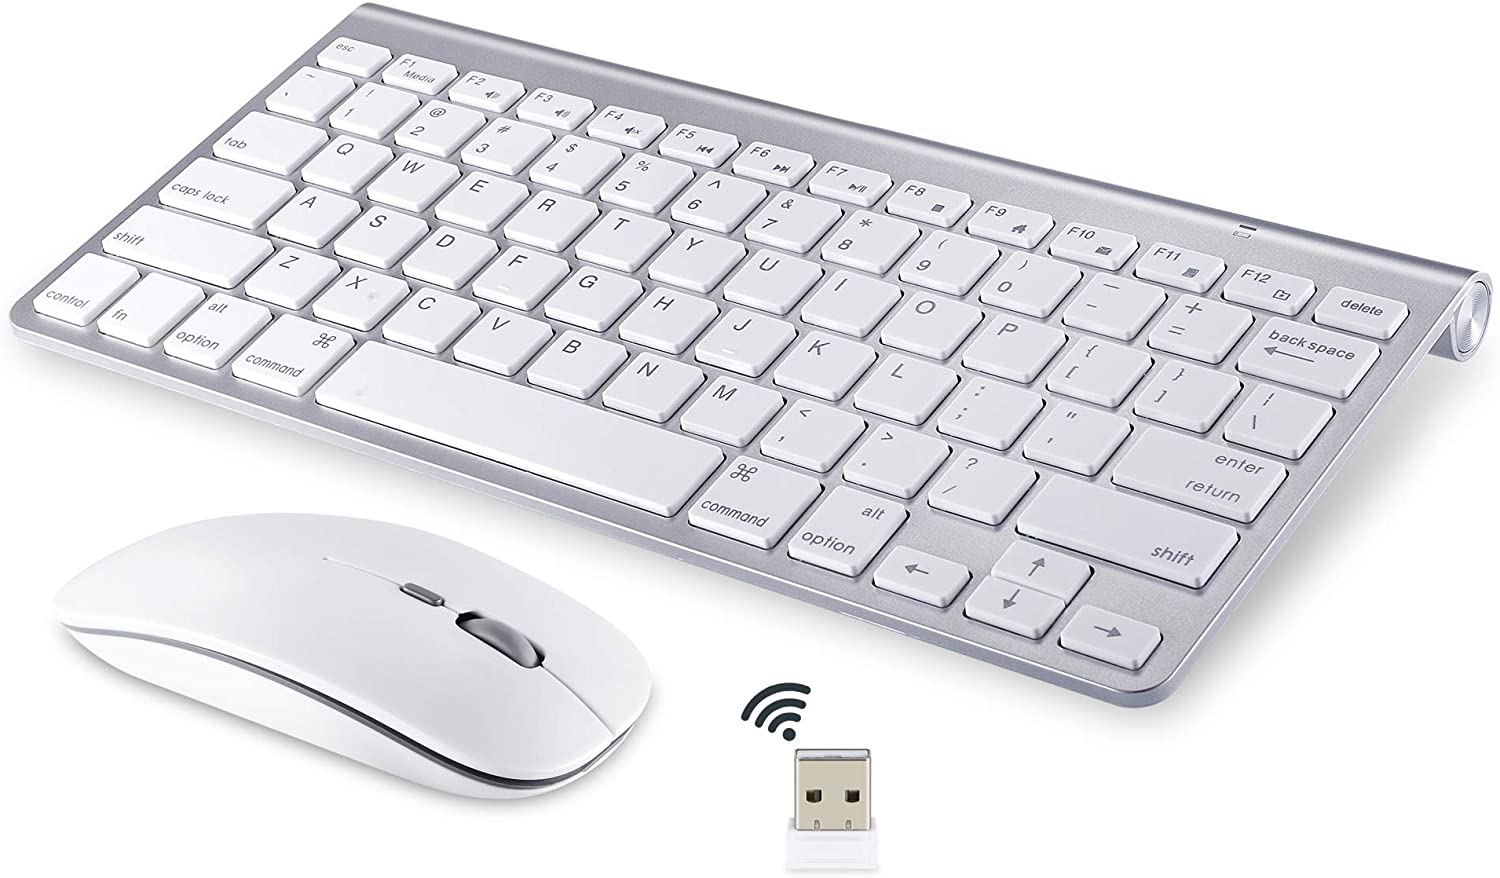 Wireless Keyboard and Mouse Compatible with iMac MacBook Windows Computer and Android Tablets (Renewed)